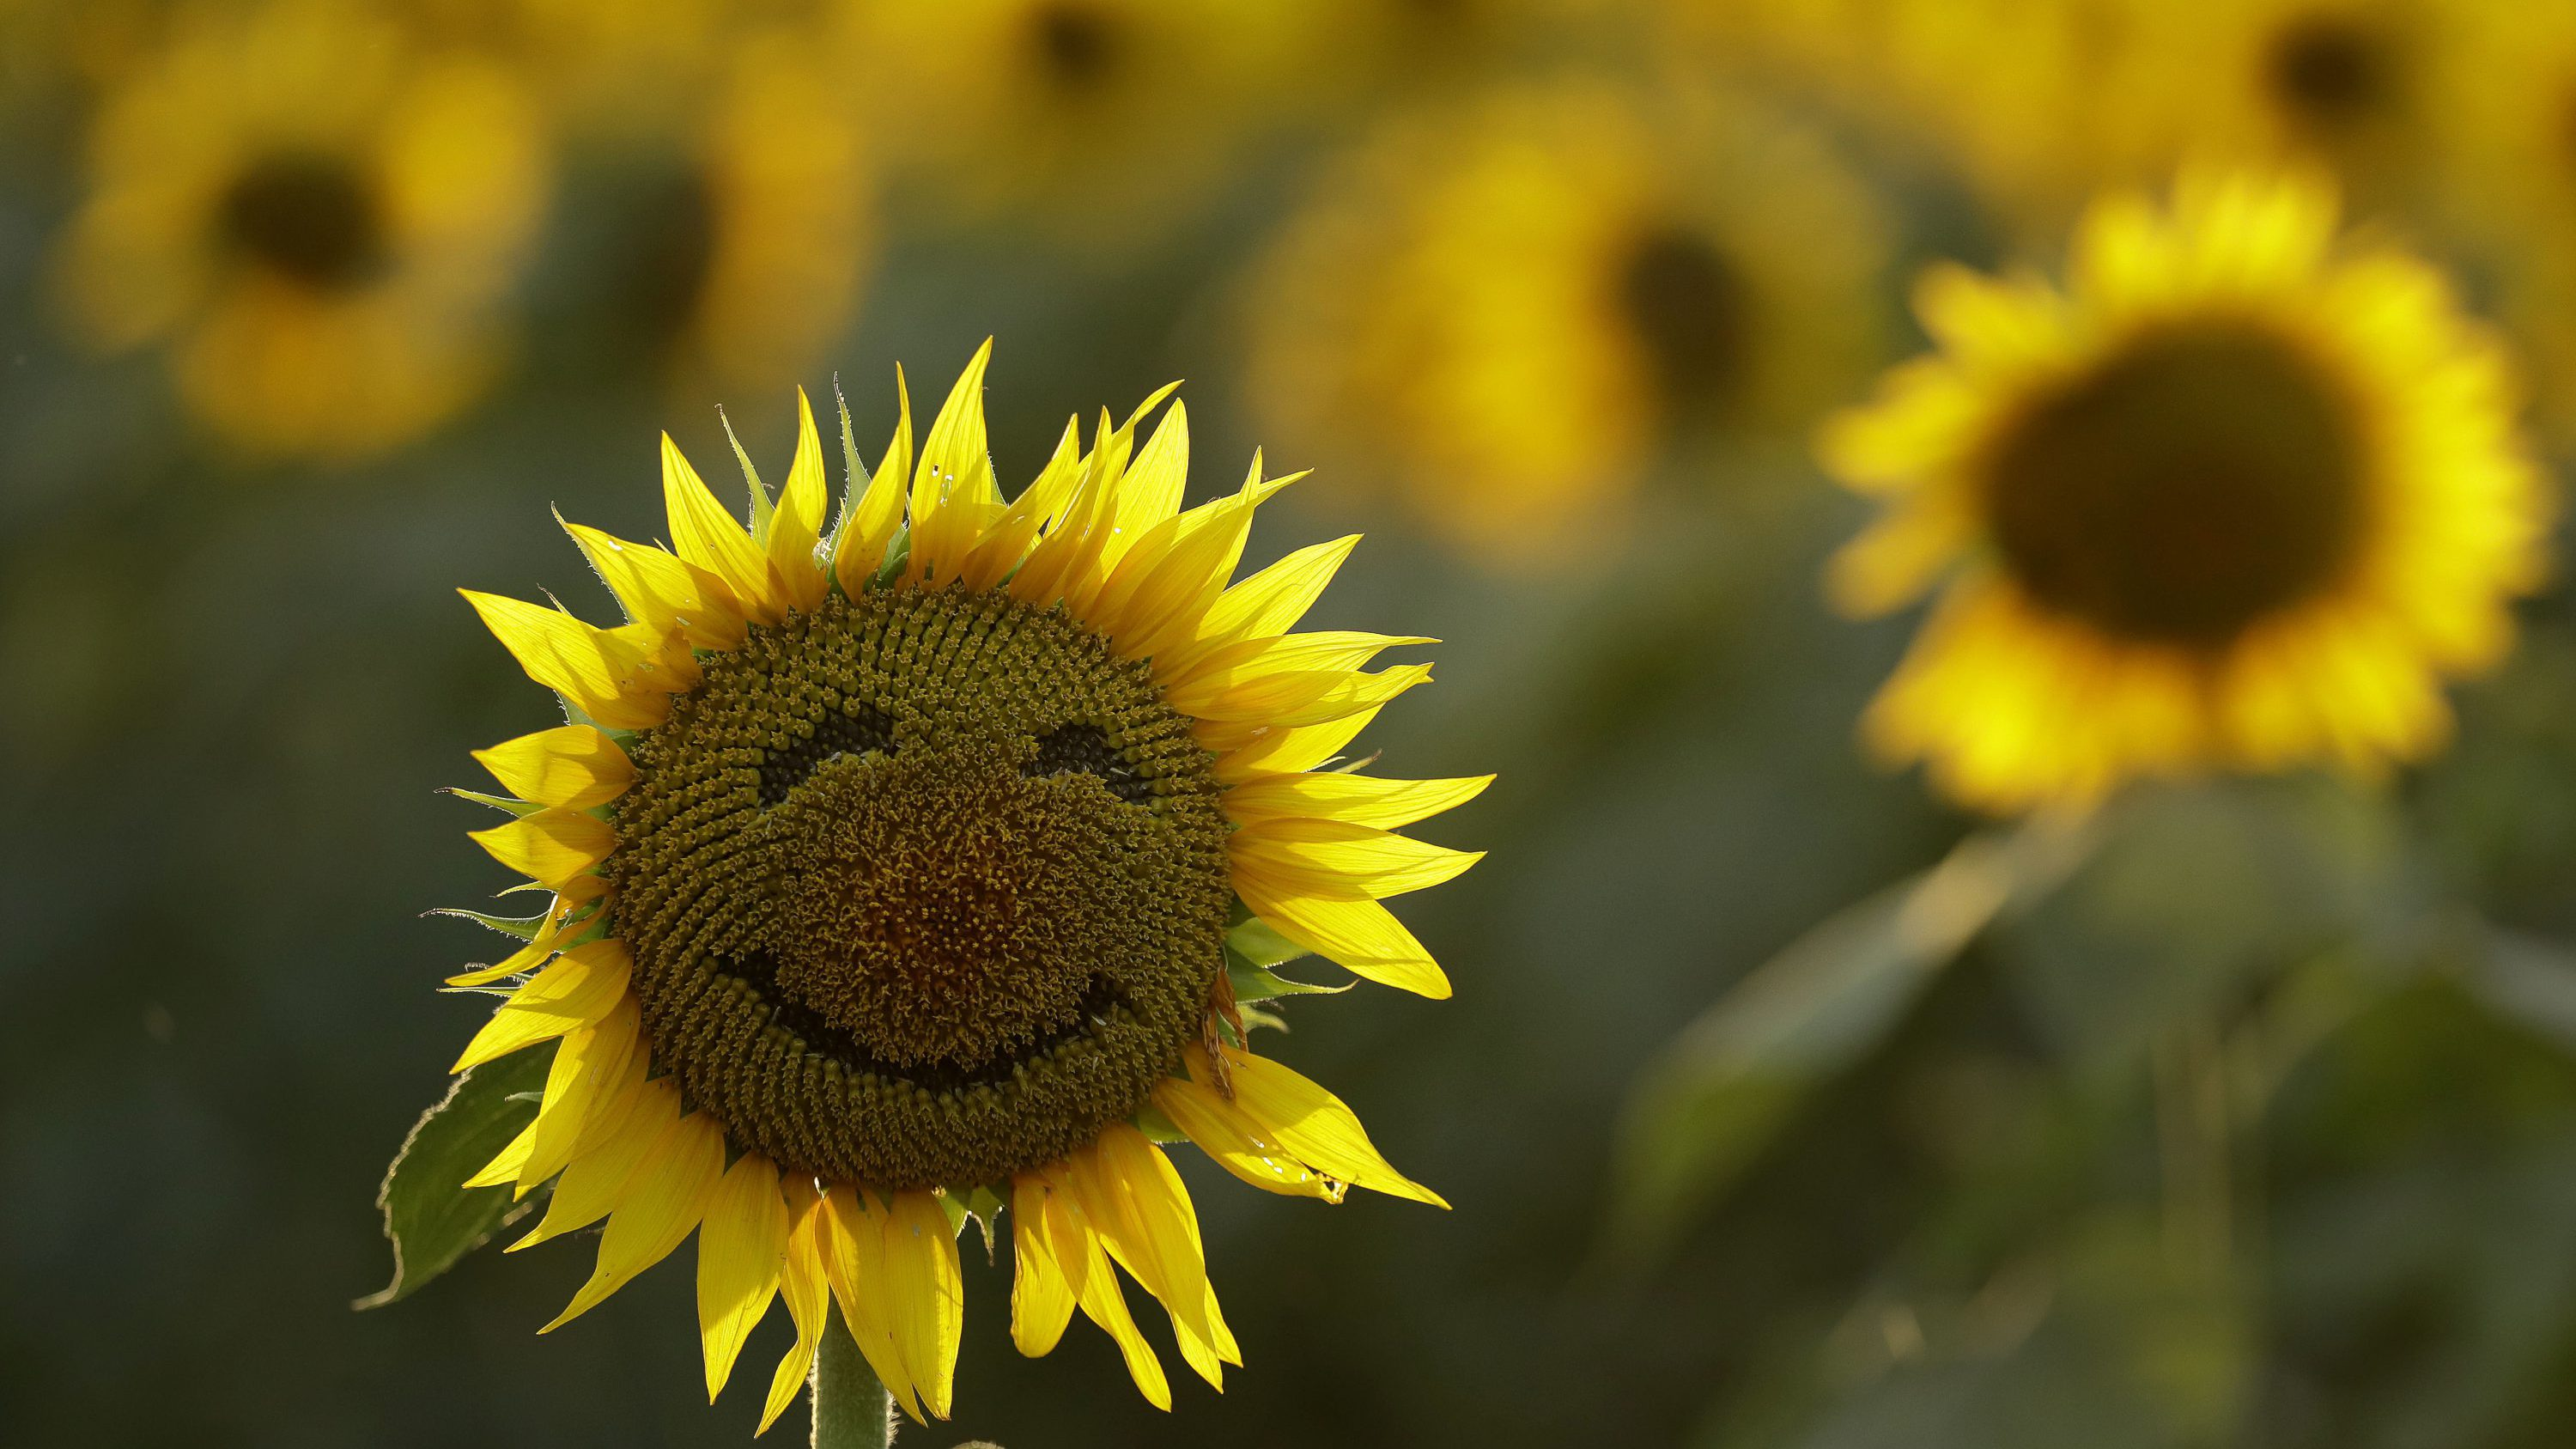 sunflower with a smiley face